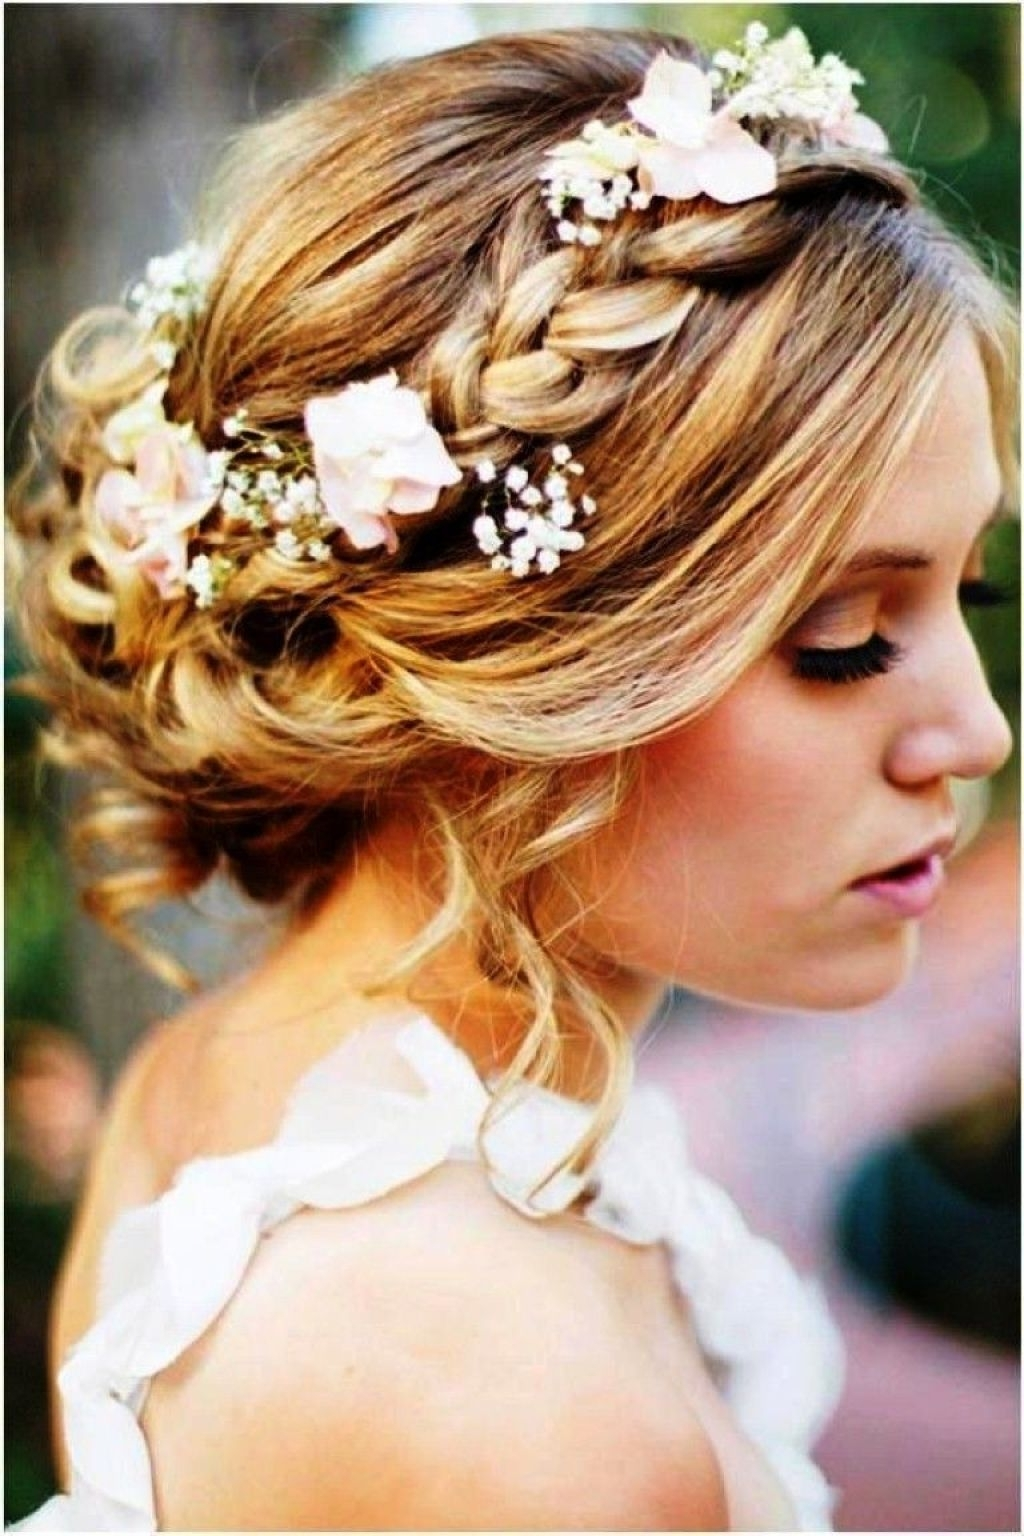 Latest Wedding Hairstyles For Medium Hair Regarding √ 24+ Best Wedding Hairstyles For Shoulder Length Hair: Mid Length (View 8 of 15)